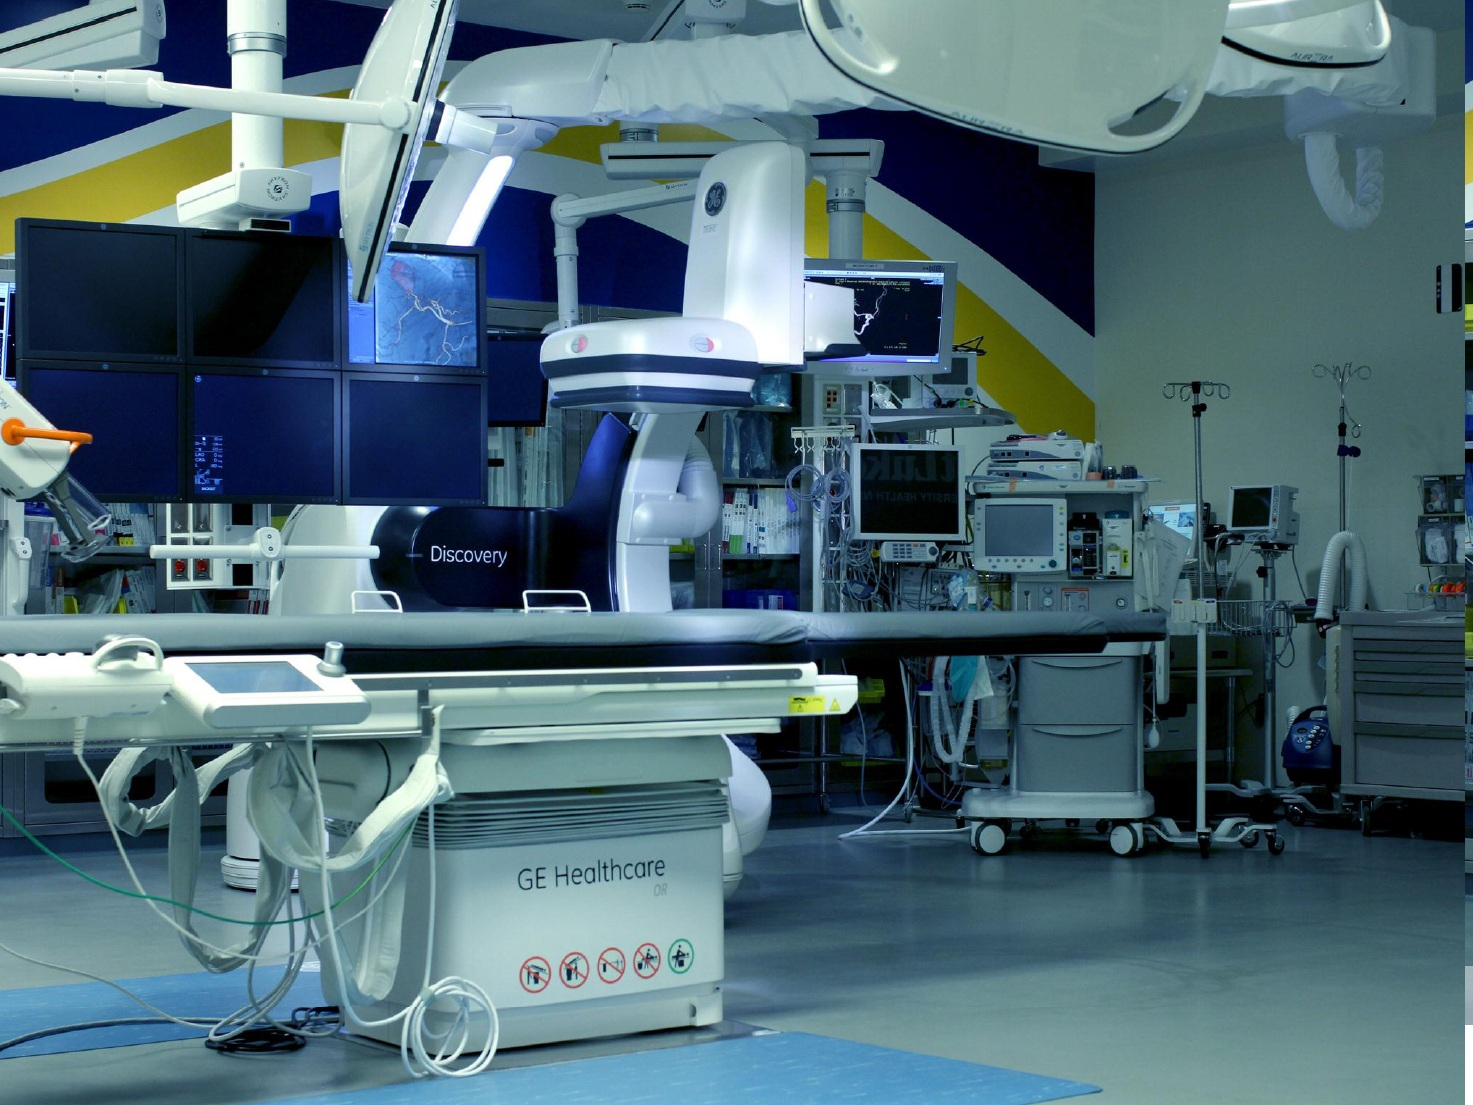 Hybrid-OR-Operating-Room-GE-Discovery-IGS-730-Skytron-LED-Surgical-Lights-Equipment-Booms-PA-22.jpg